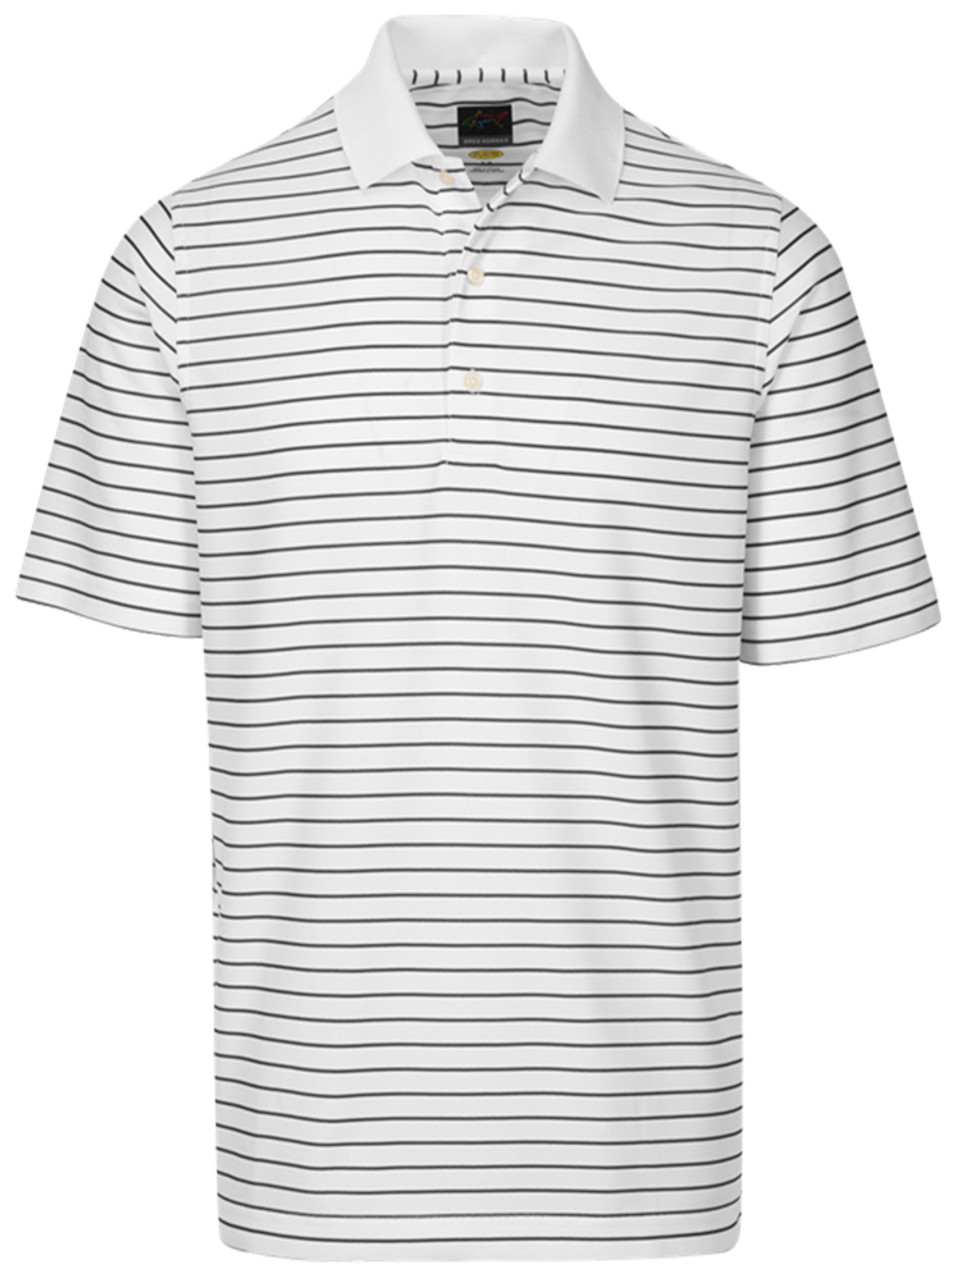 Greg Norman Mens Protek Micro Pique Stripe Polo